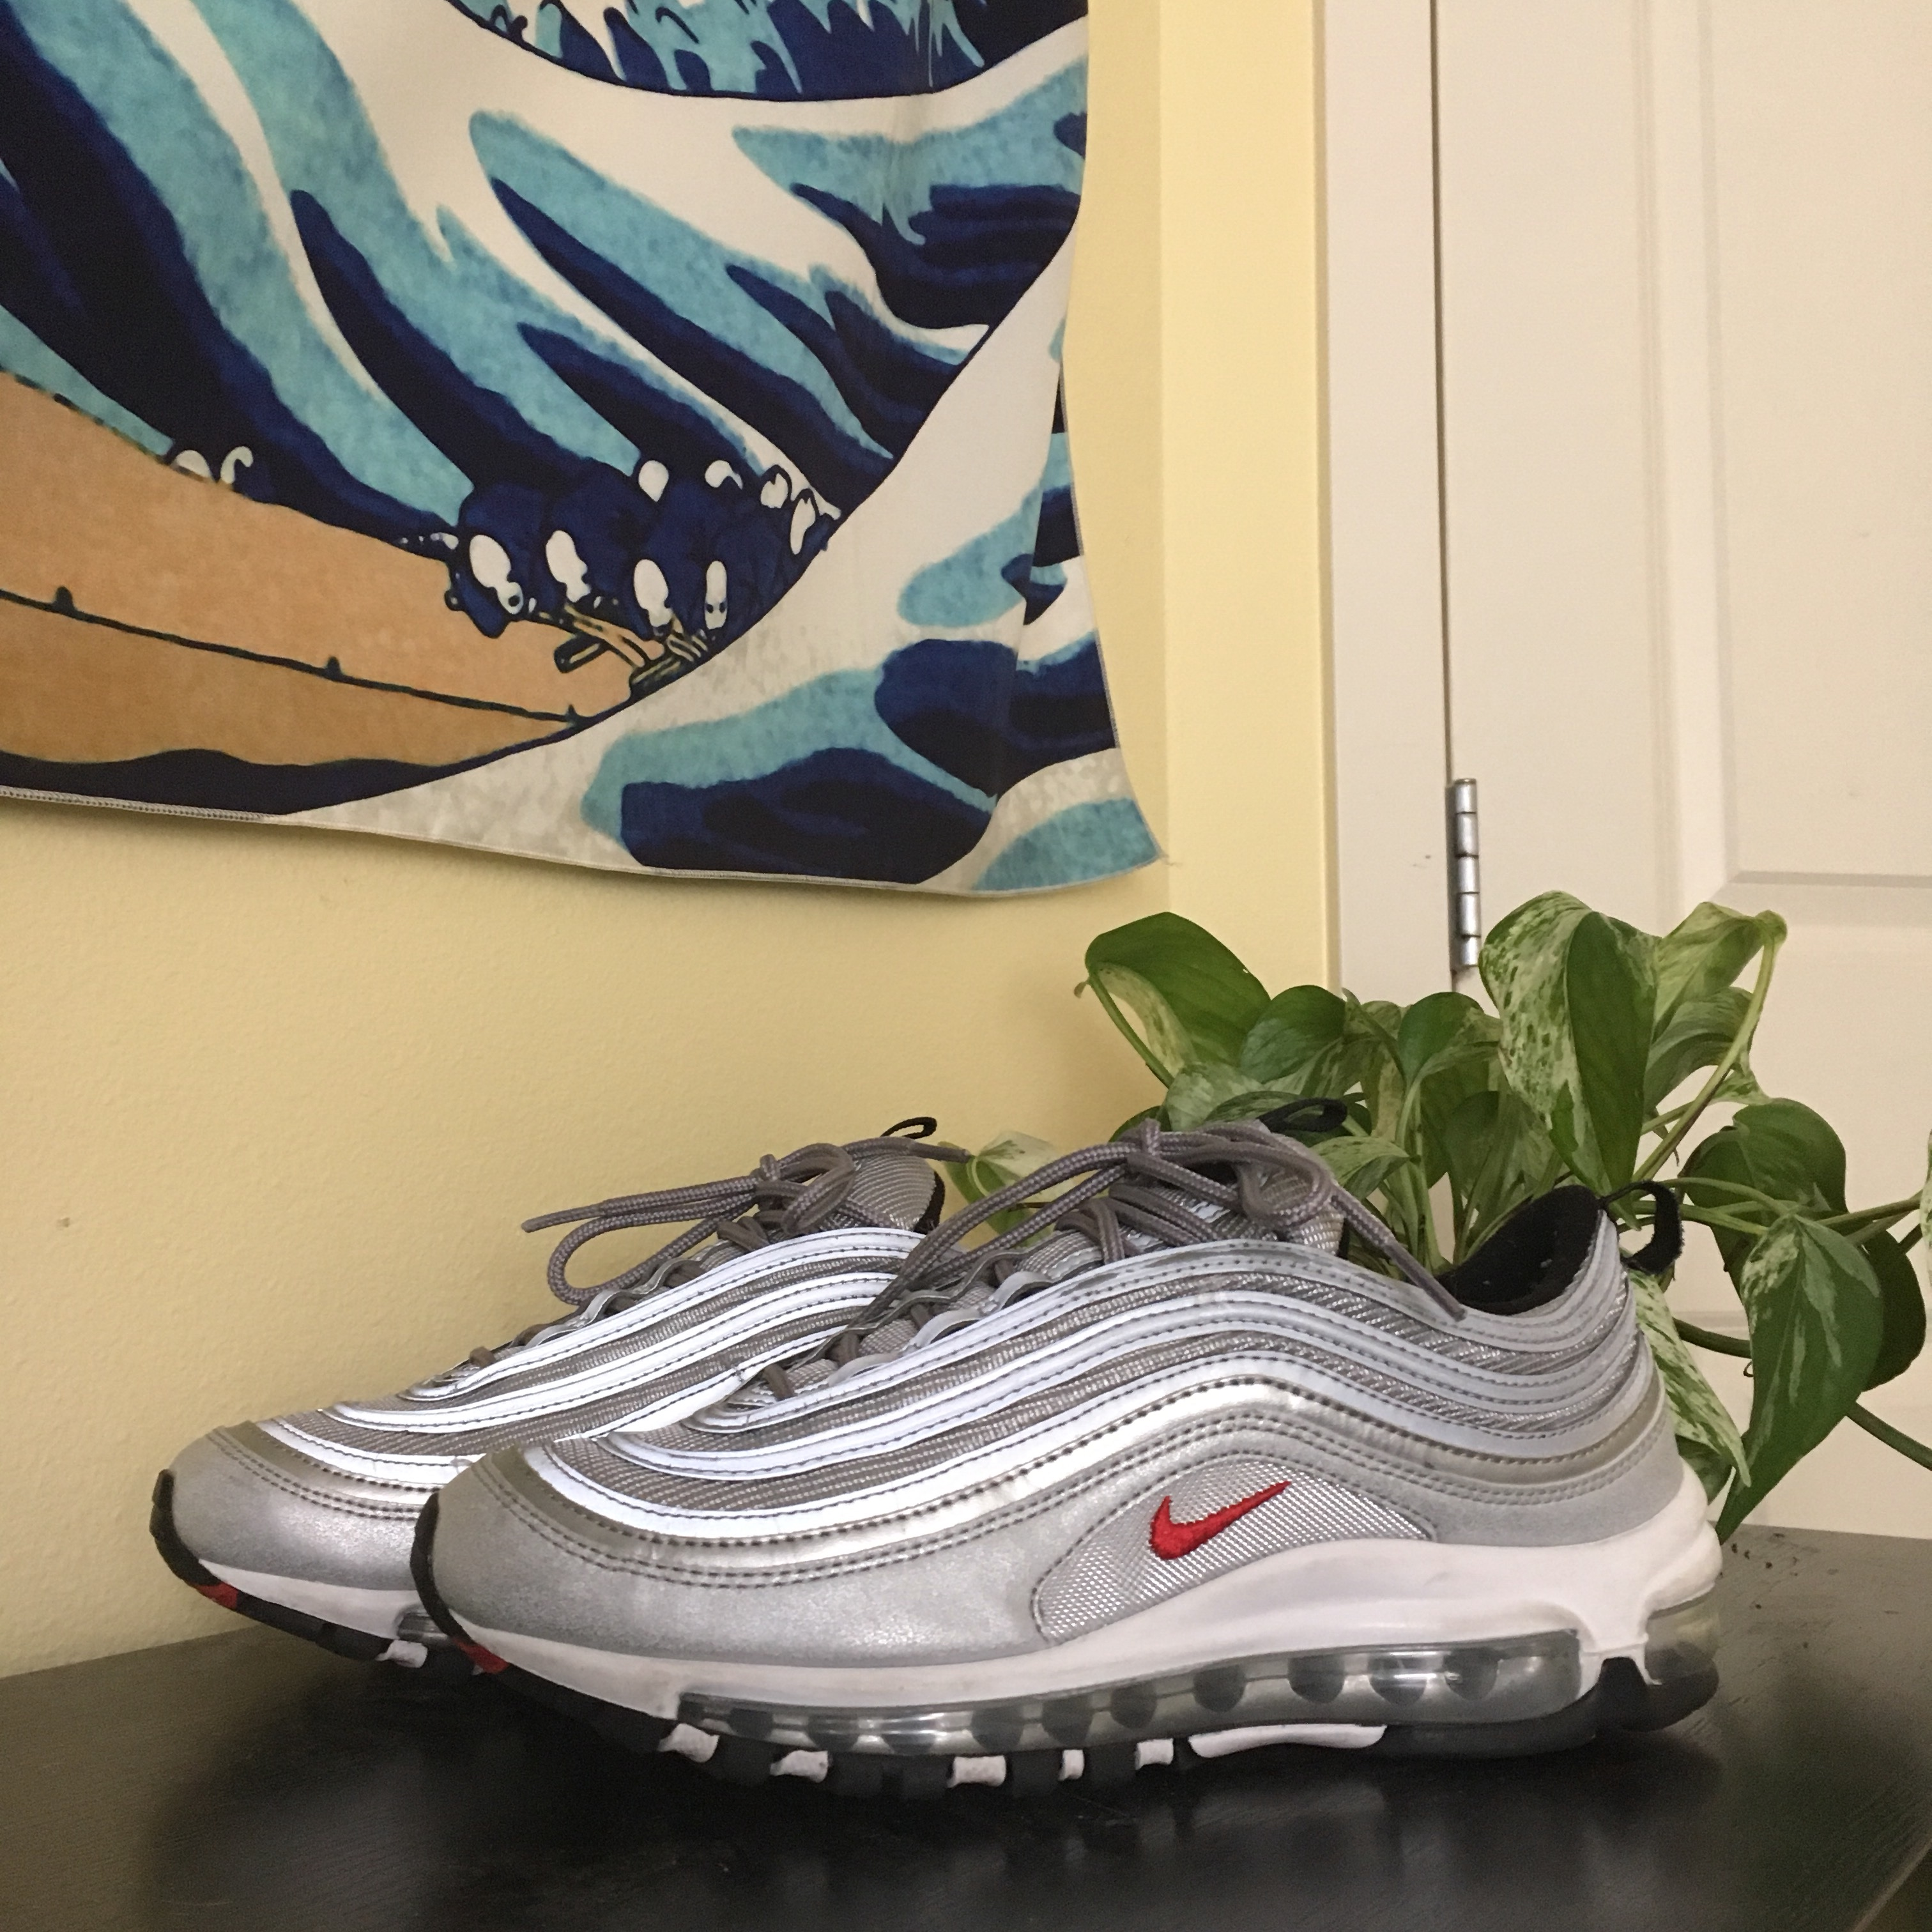 NIKE AIR MAX 97 SILVER BULLETS These are absolutely Depop